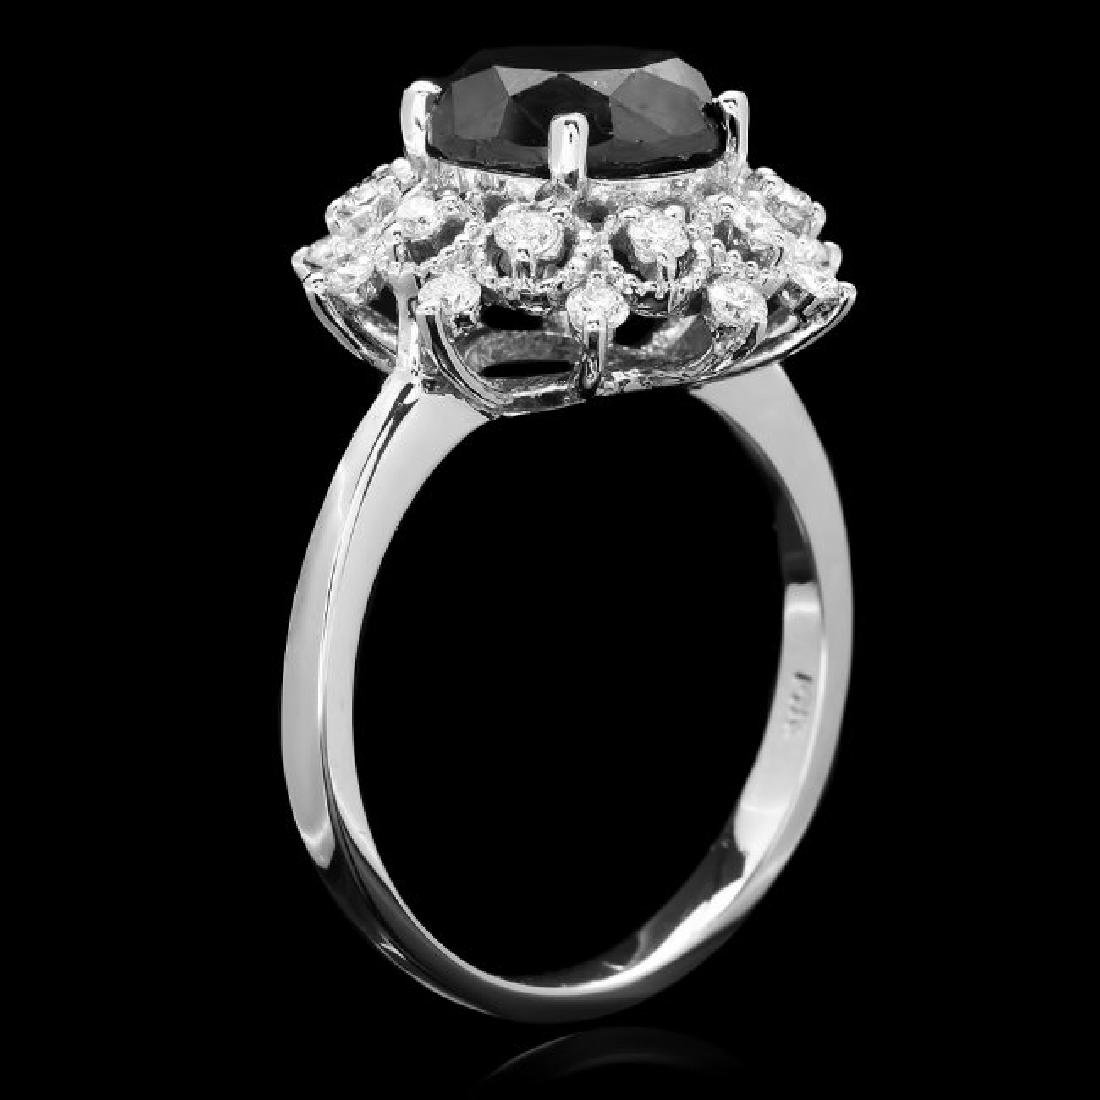 14k White Gold 2.8ct Diamond Ring - 3